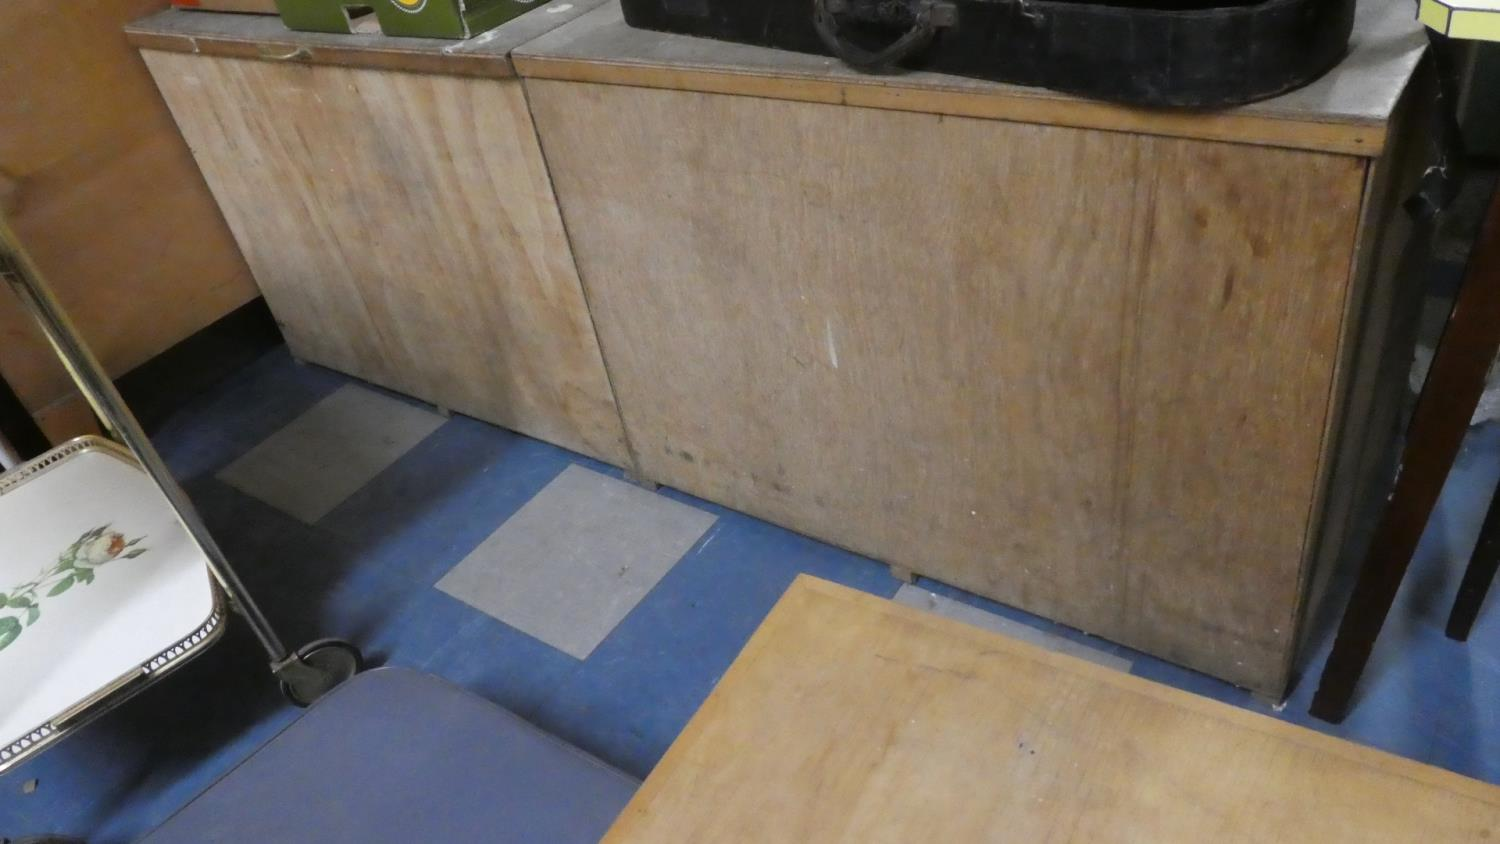 Lot 470 - Two Plywood Storage Boxes Each 91cm Long